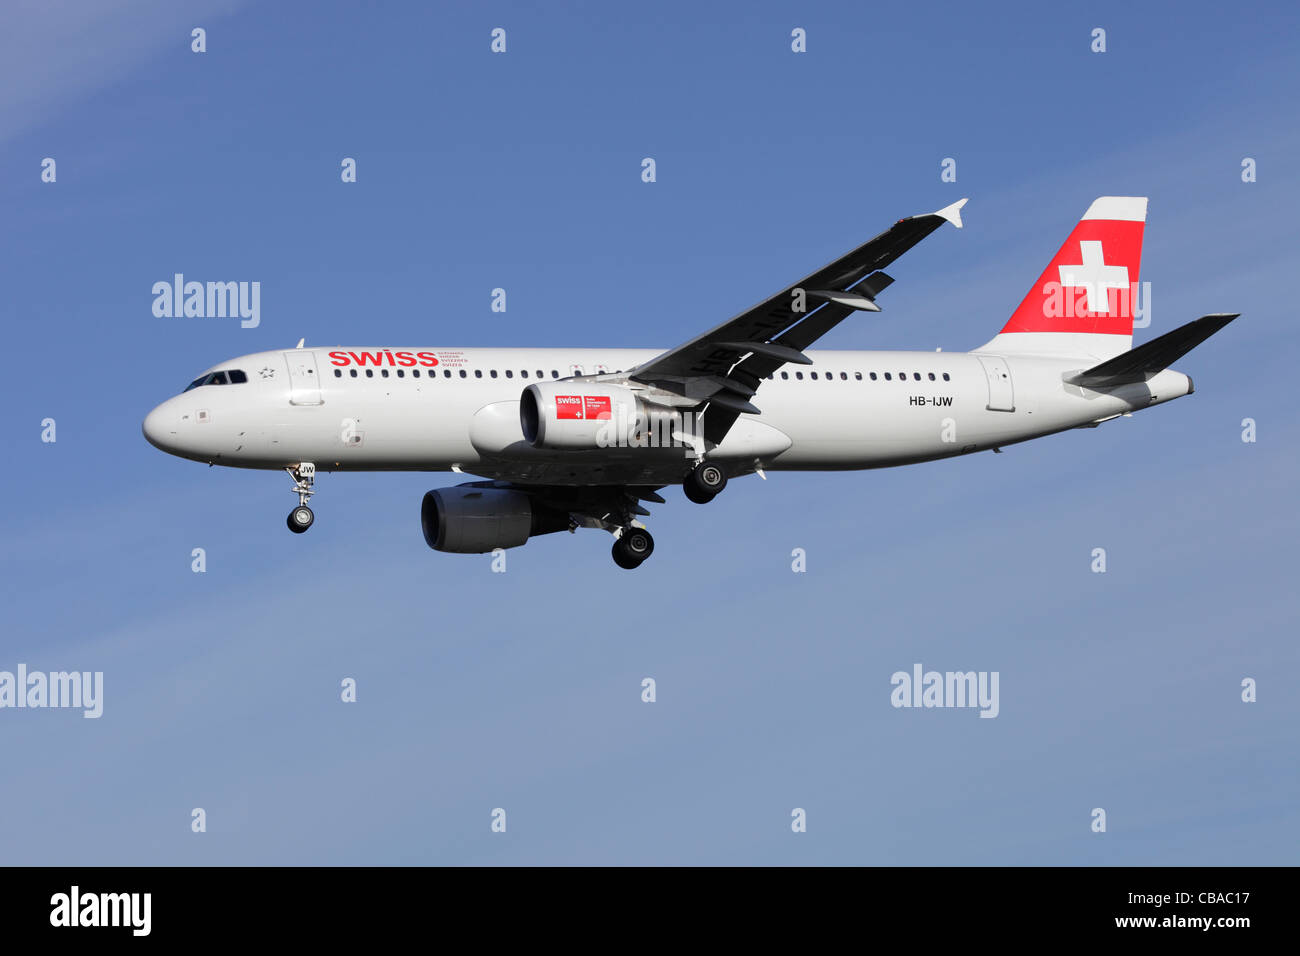 Swiss International Air Lines Airbus A320-214 HB-IJW on approach to Heathrow - Stock Image